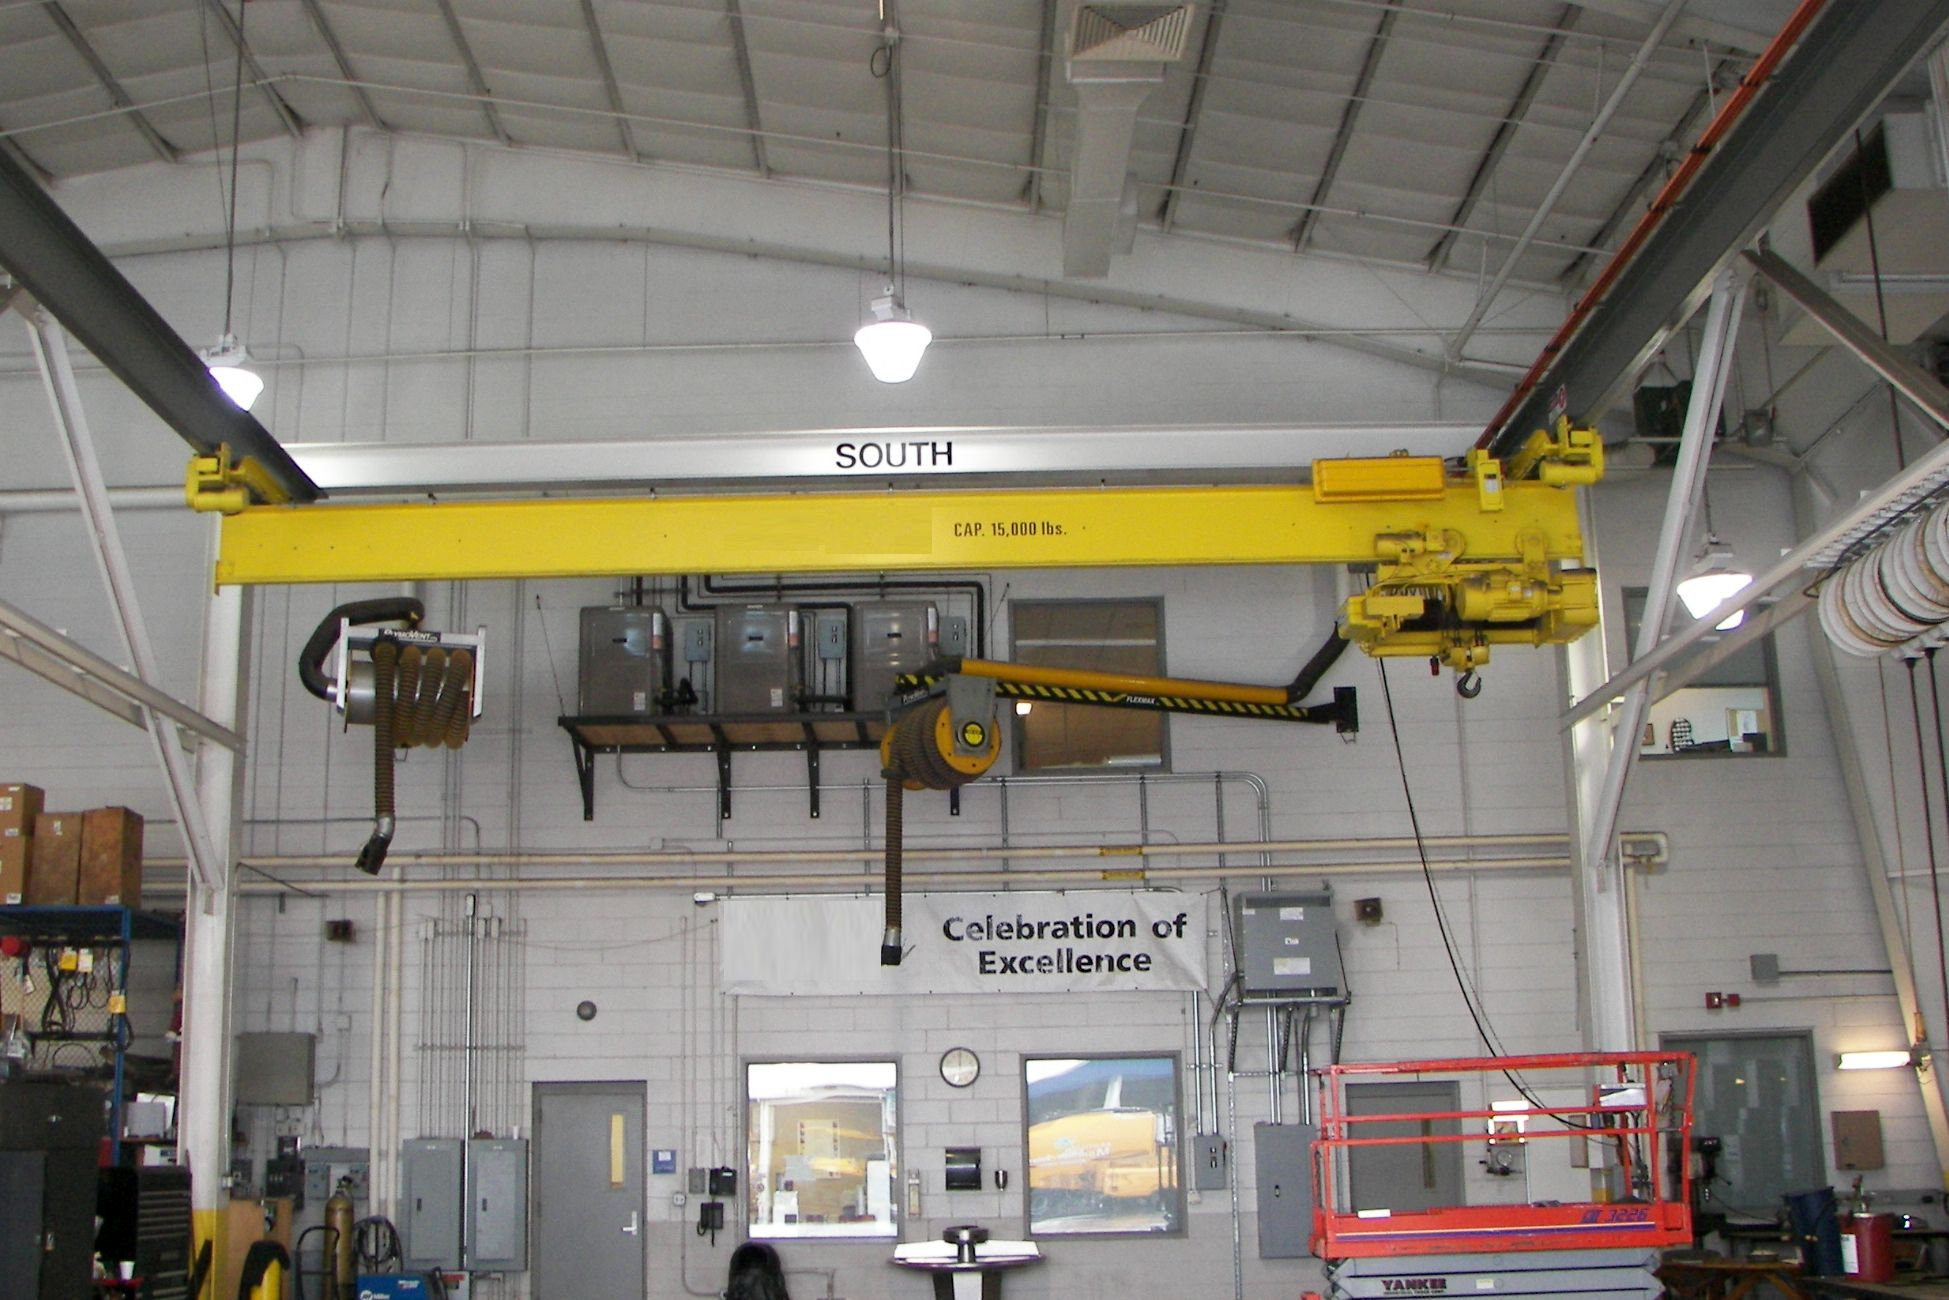 Overhead Crane Failure : Services for the insurance industry roaring brook